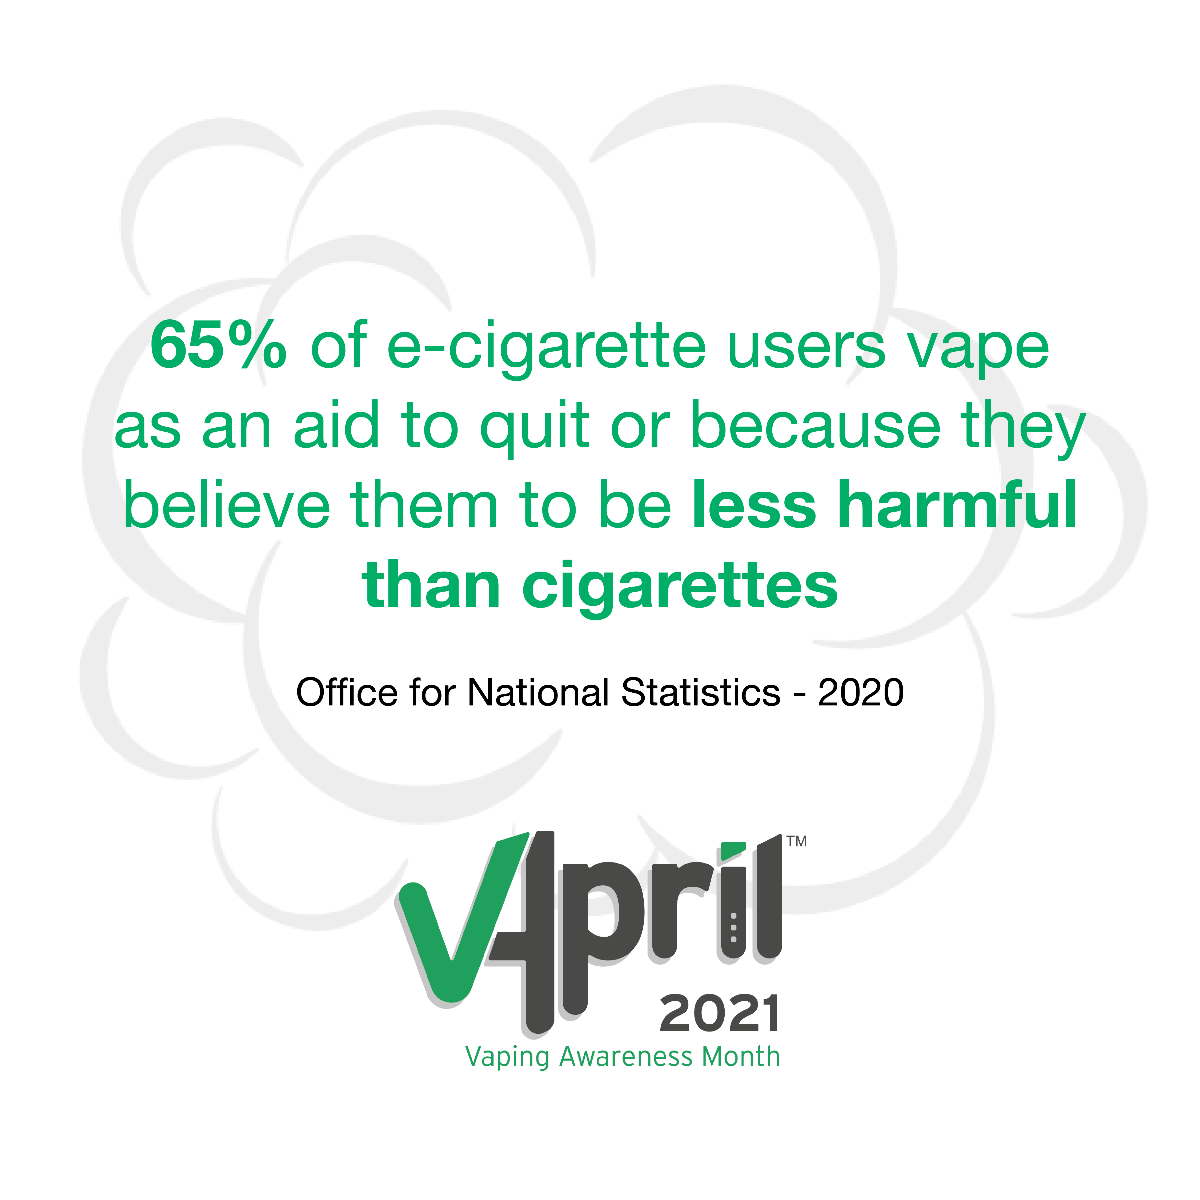 Vapril 2021 65% of cigarette users vape as an aid to quitting